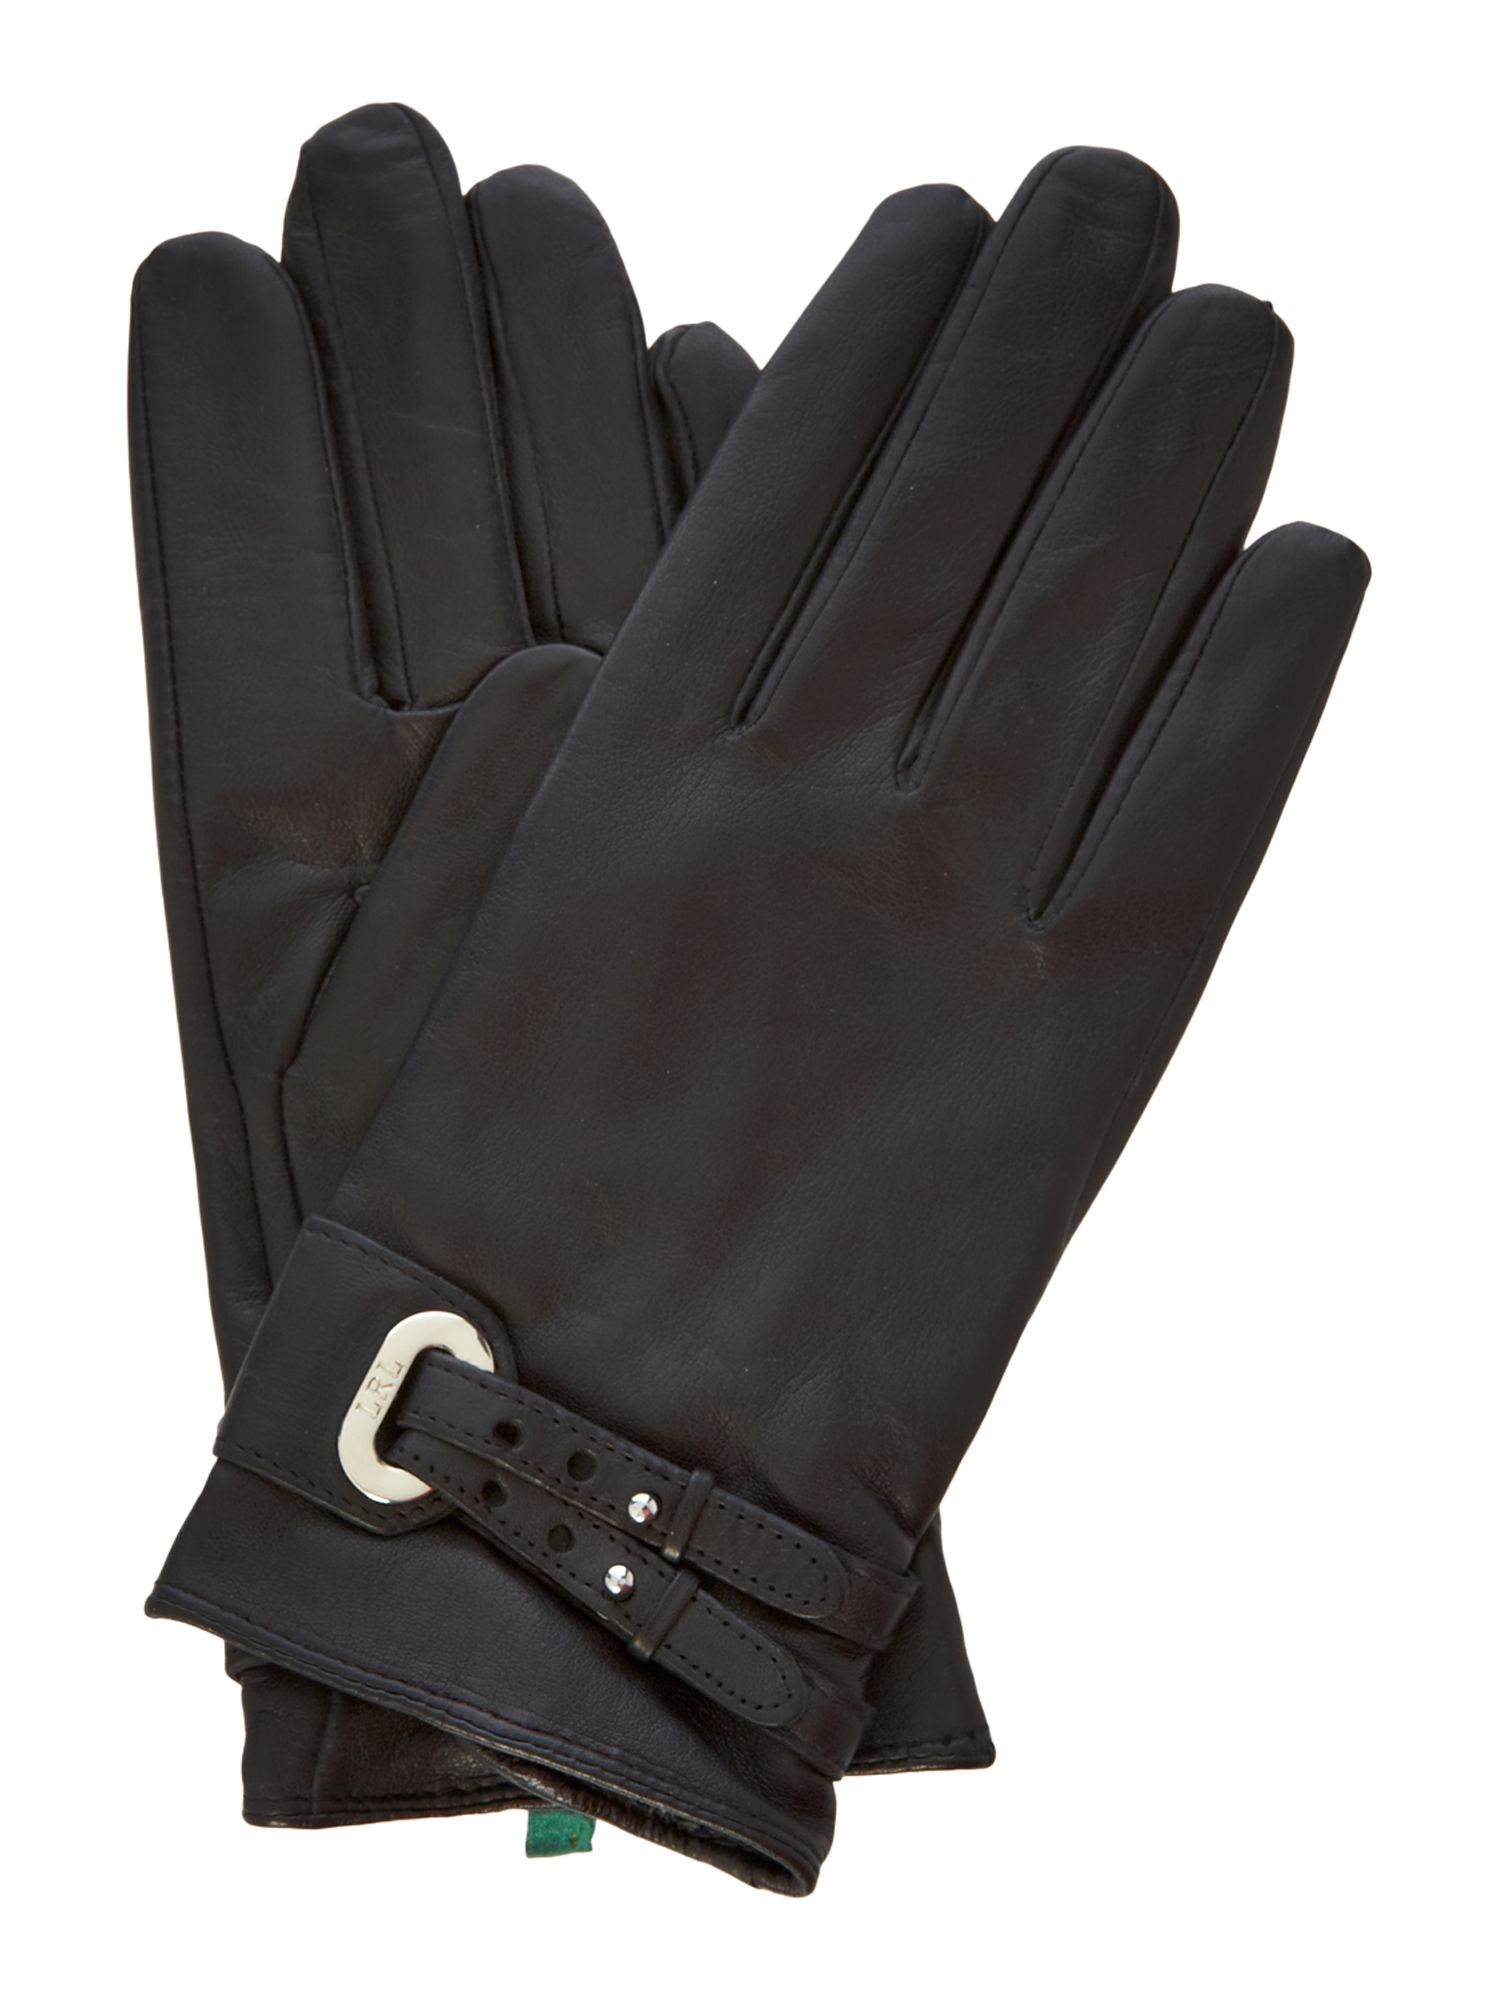 Double belt and grommet gloves